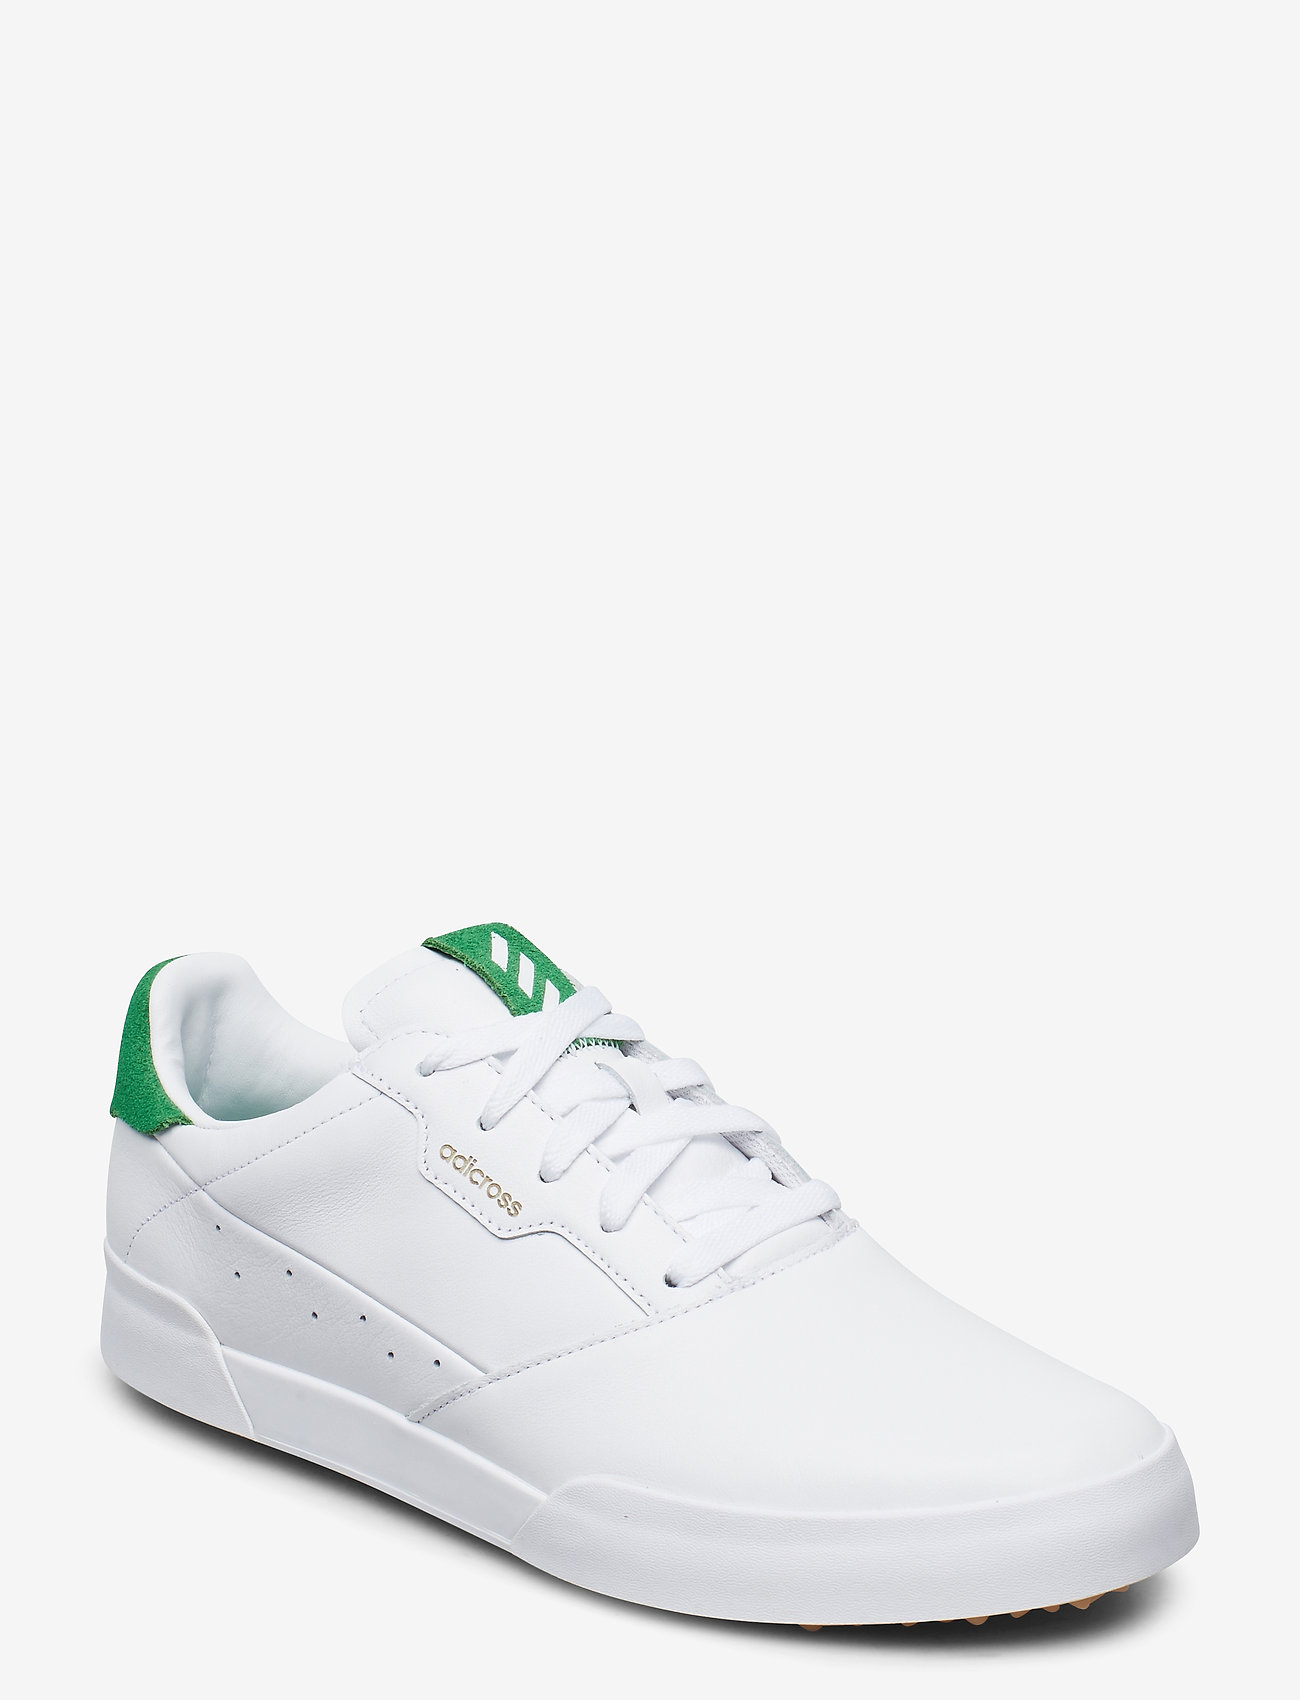 adidas Golf - ADICROSS RETRO - golfsko - ftwwht/green/gum3 - 0